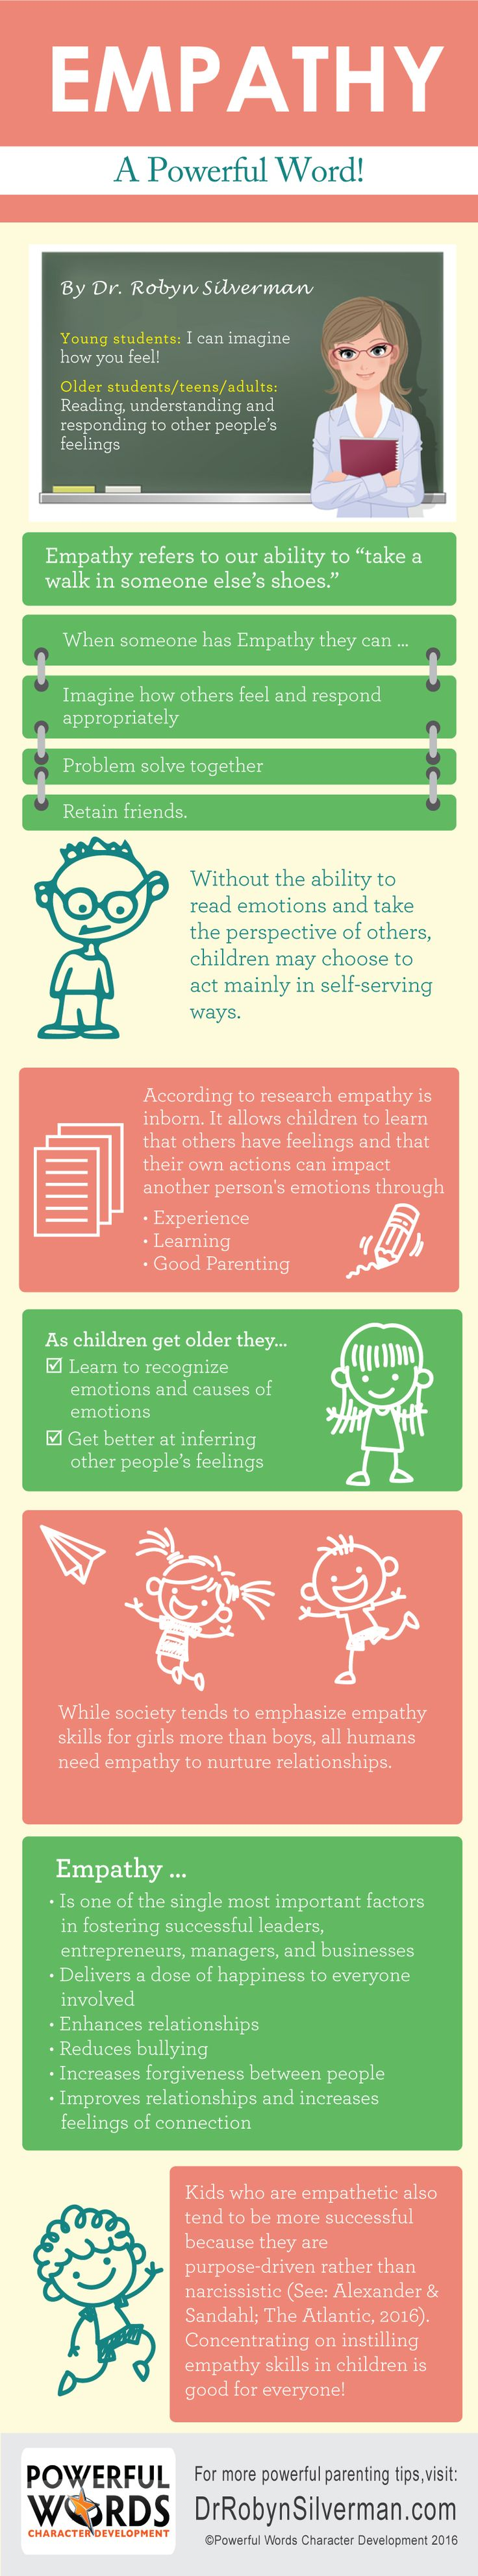 introducing child psychology a practical guide